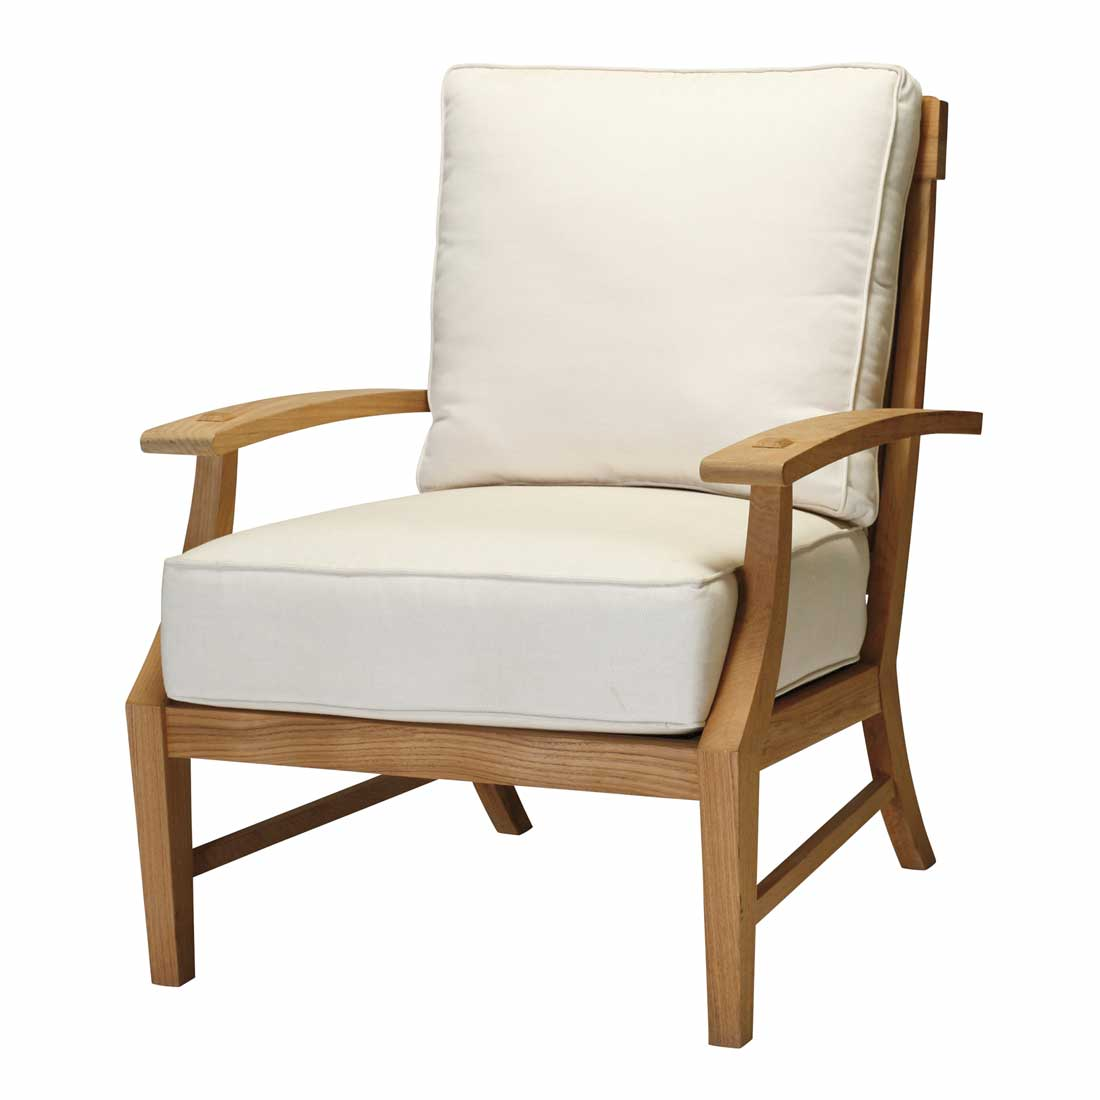 Croque Teak Patio Lounge Chair